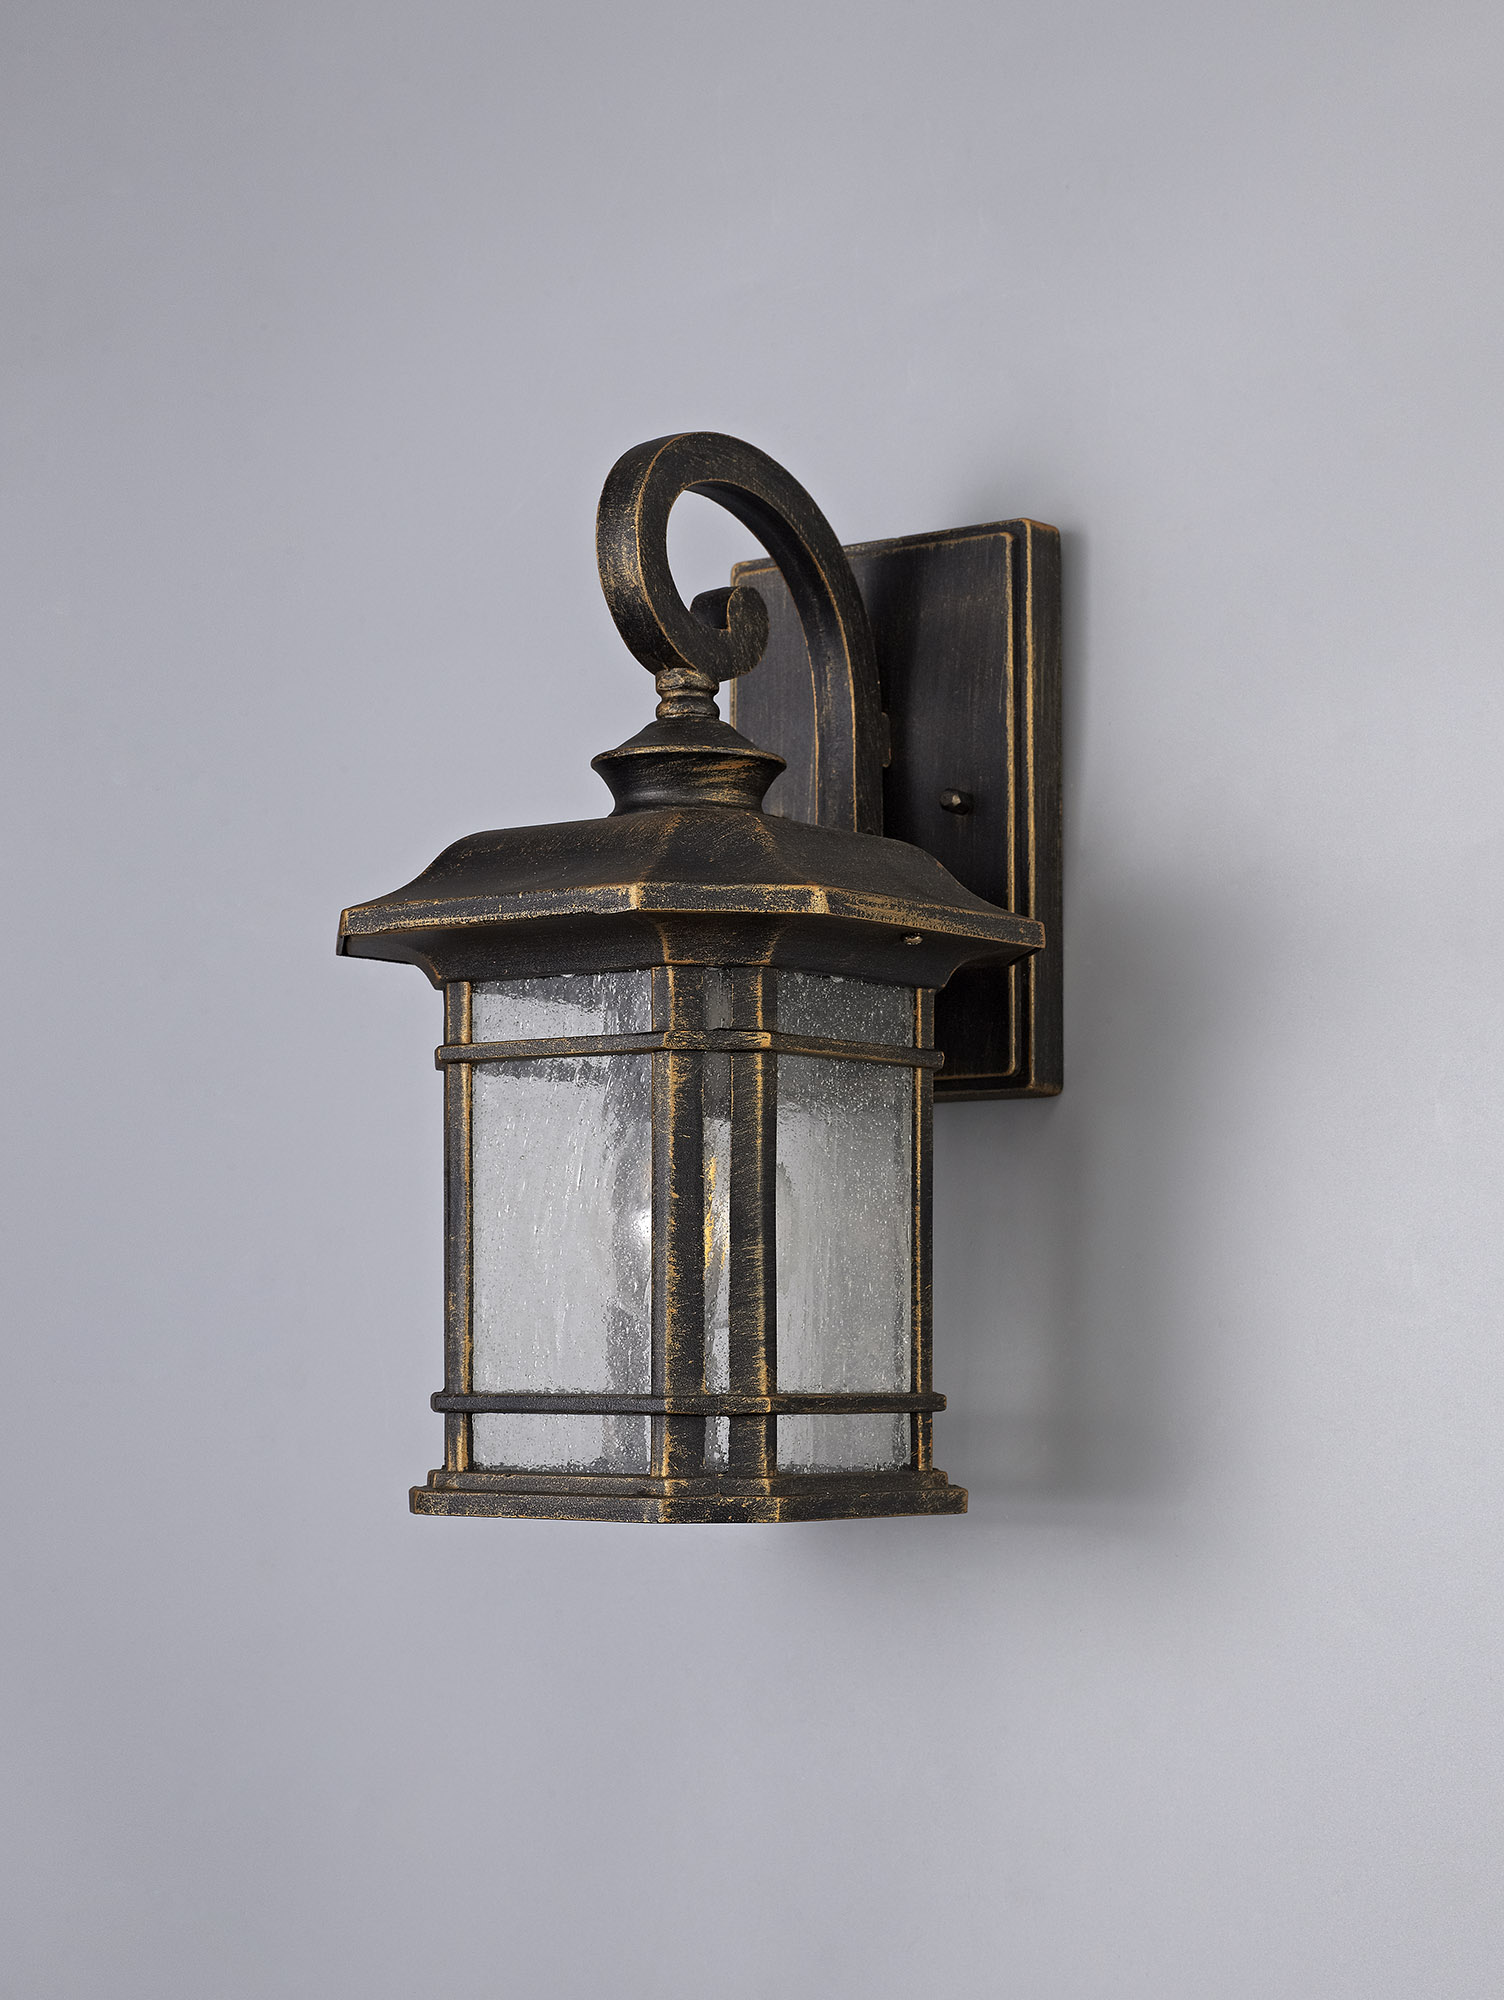 Small Wall Lamp, 1 x E27, Brushed Black Gold/Seeded Glass, IP54, 2yrs Warranty